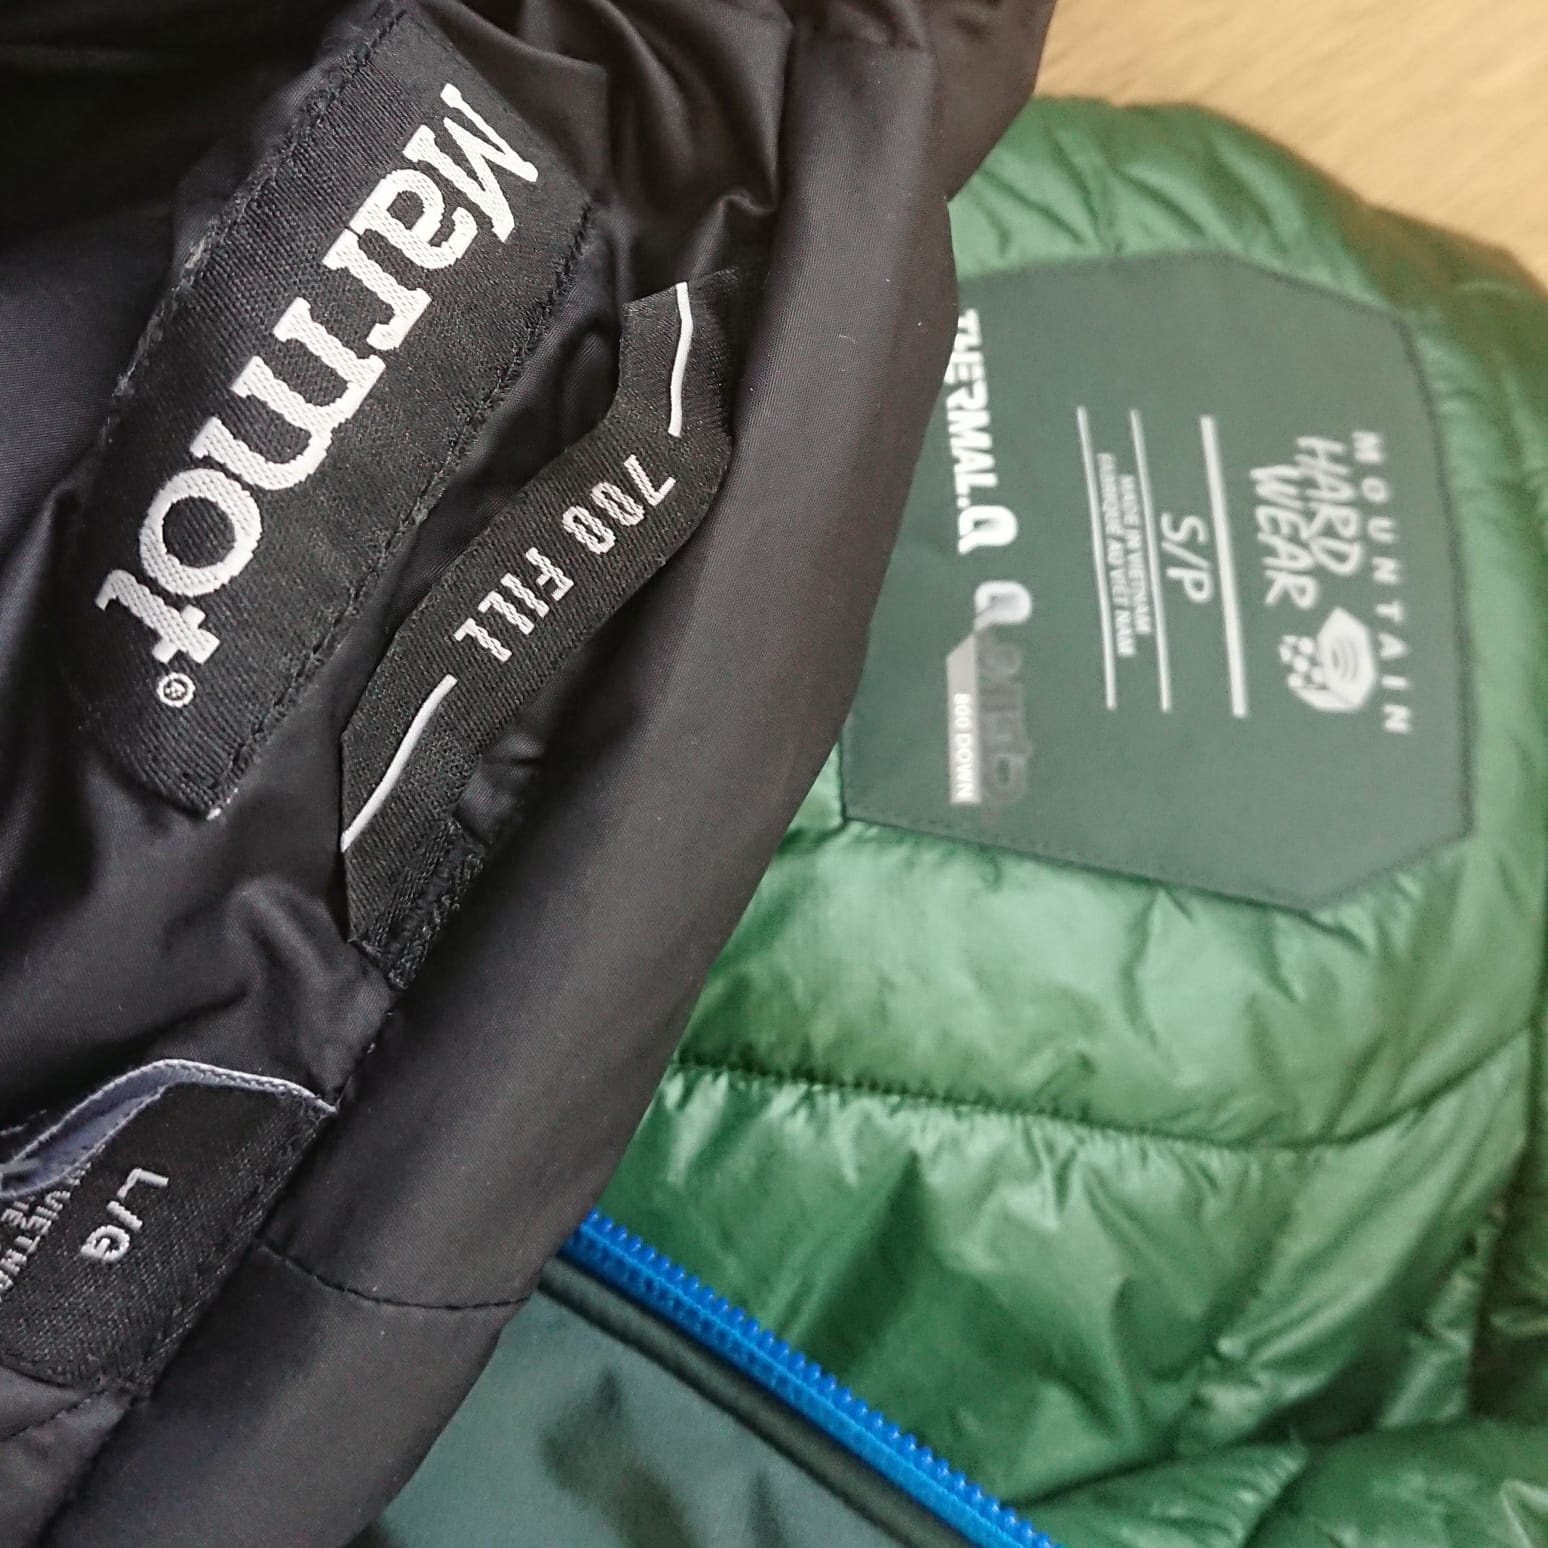 Comparing down jackets